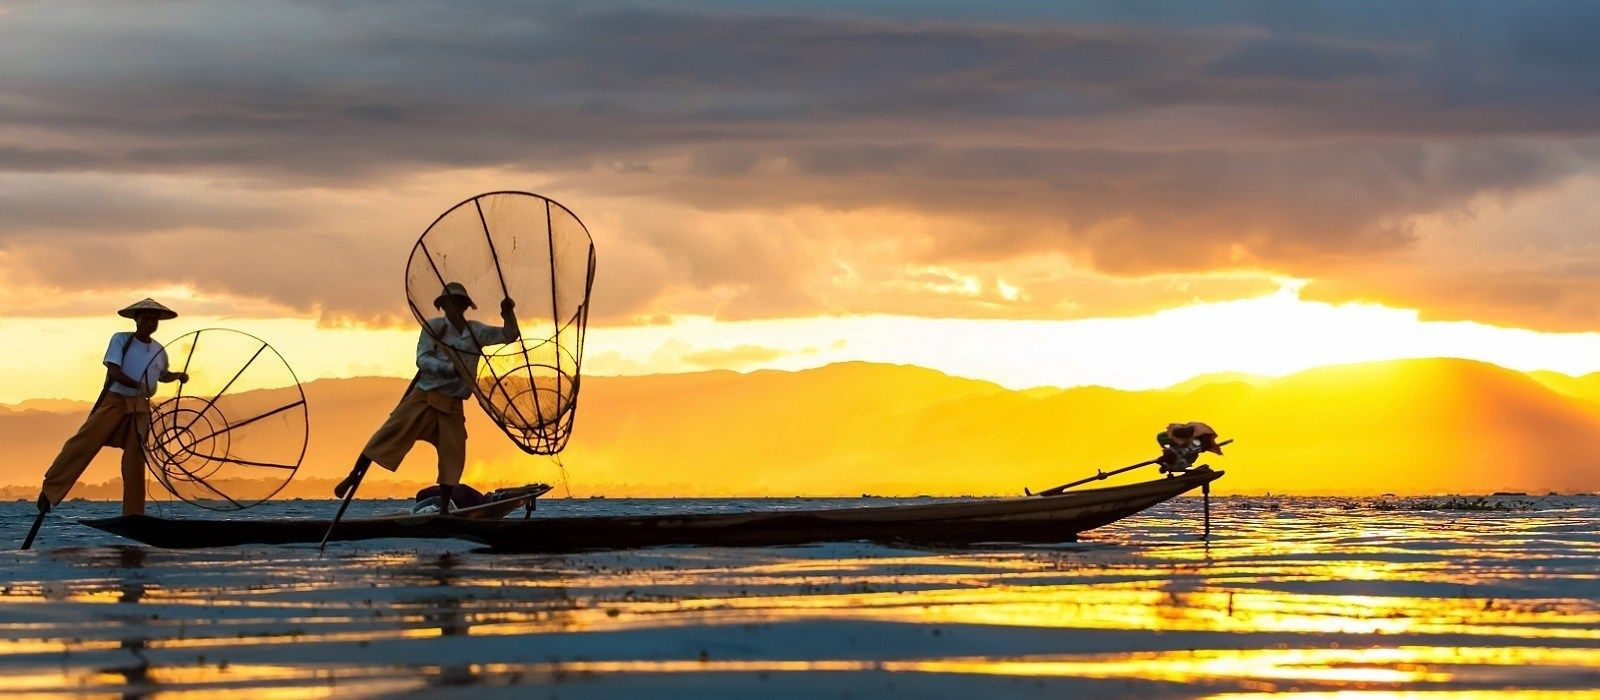 Destination Inle Lake Myanmar